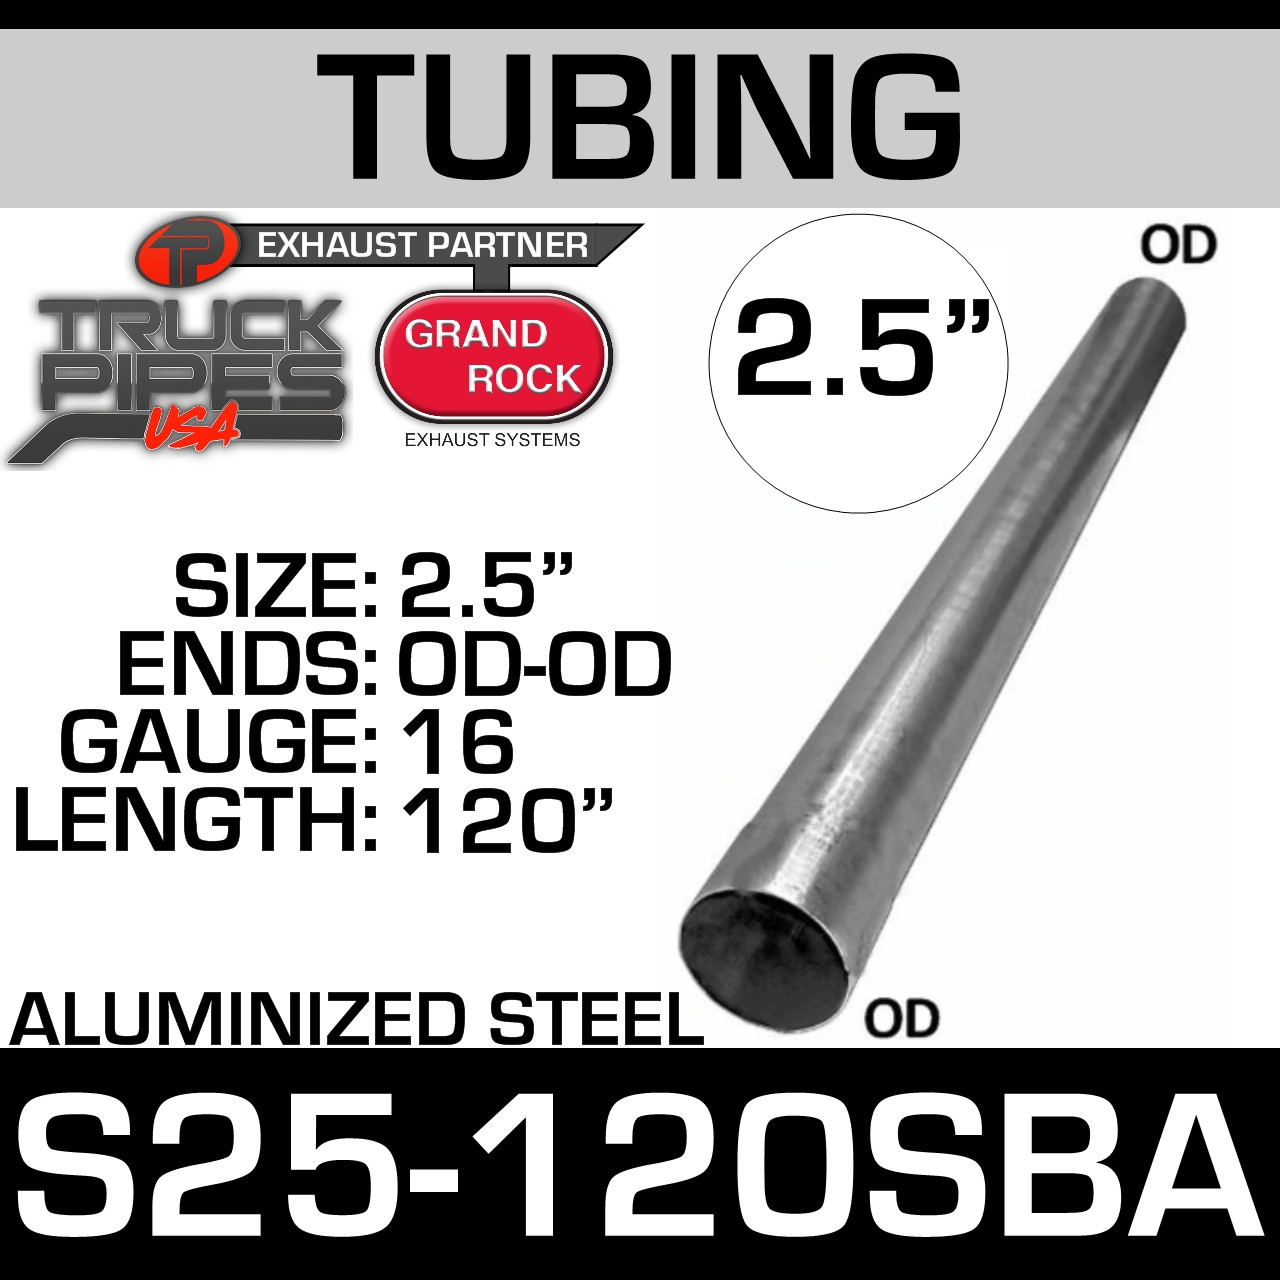 s25-120sba-aluminized-steel-exhaust-tubing-2-5-inch-diameter-od-end-120-inches-long.jpg